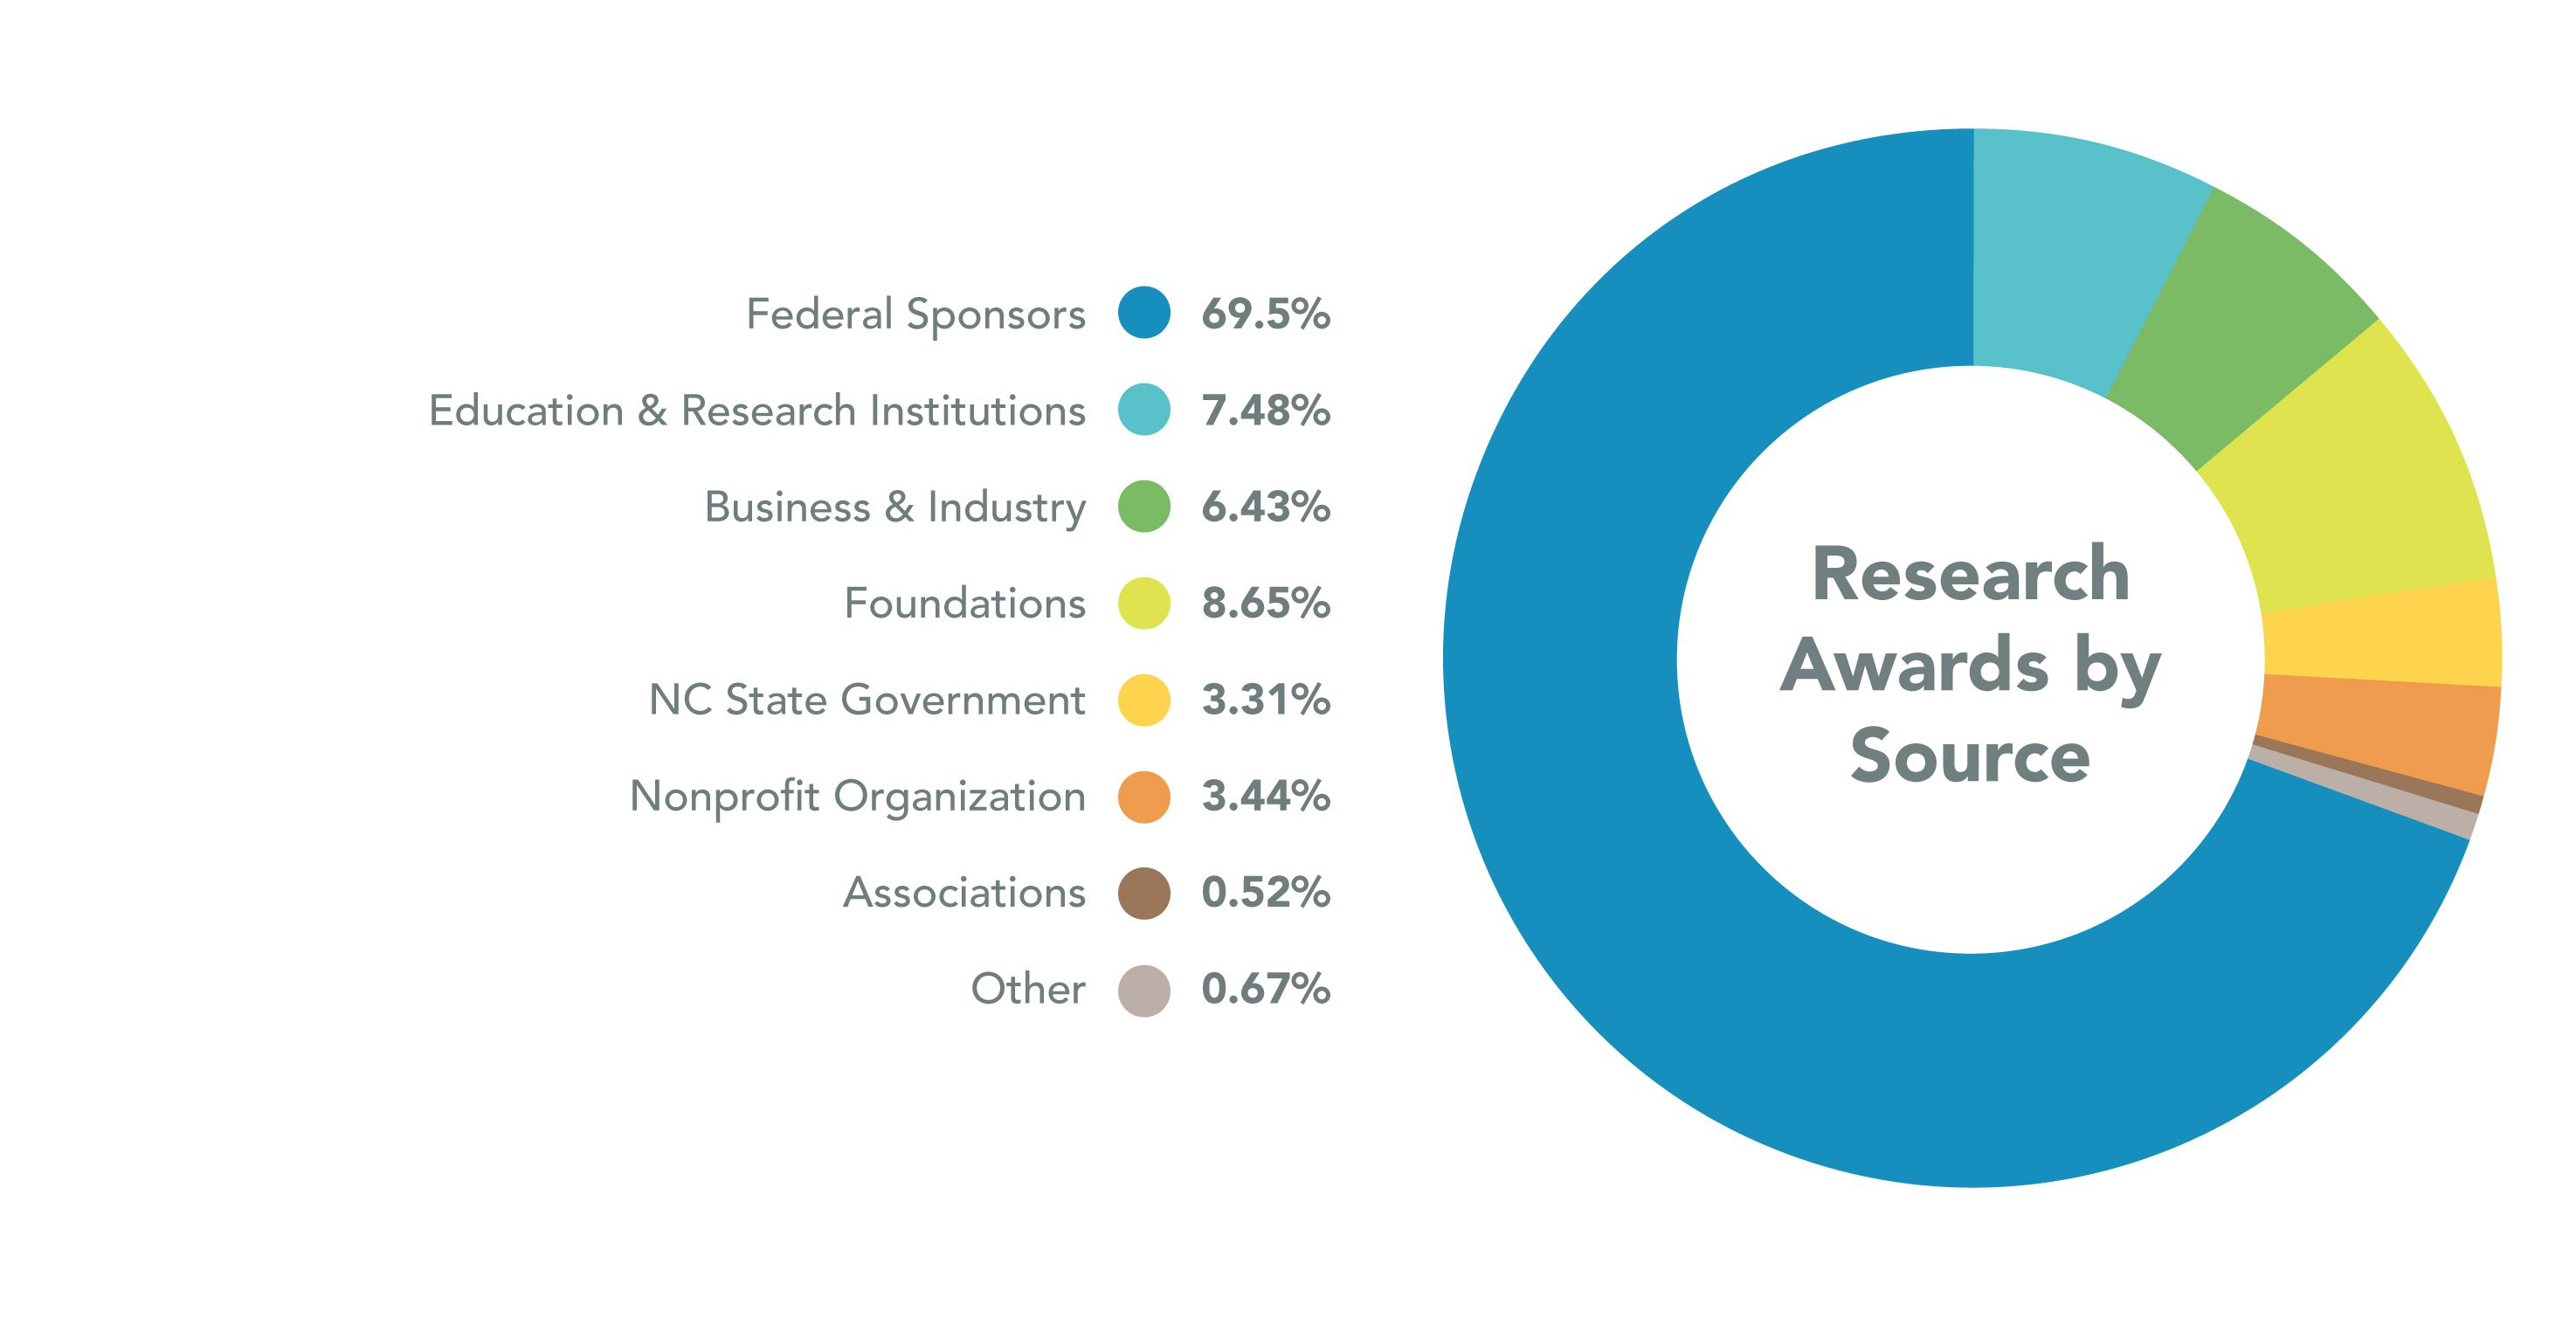 Funding sources for research studies. Federal sources make up 69.5% of funding.